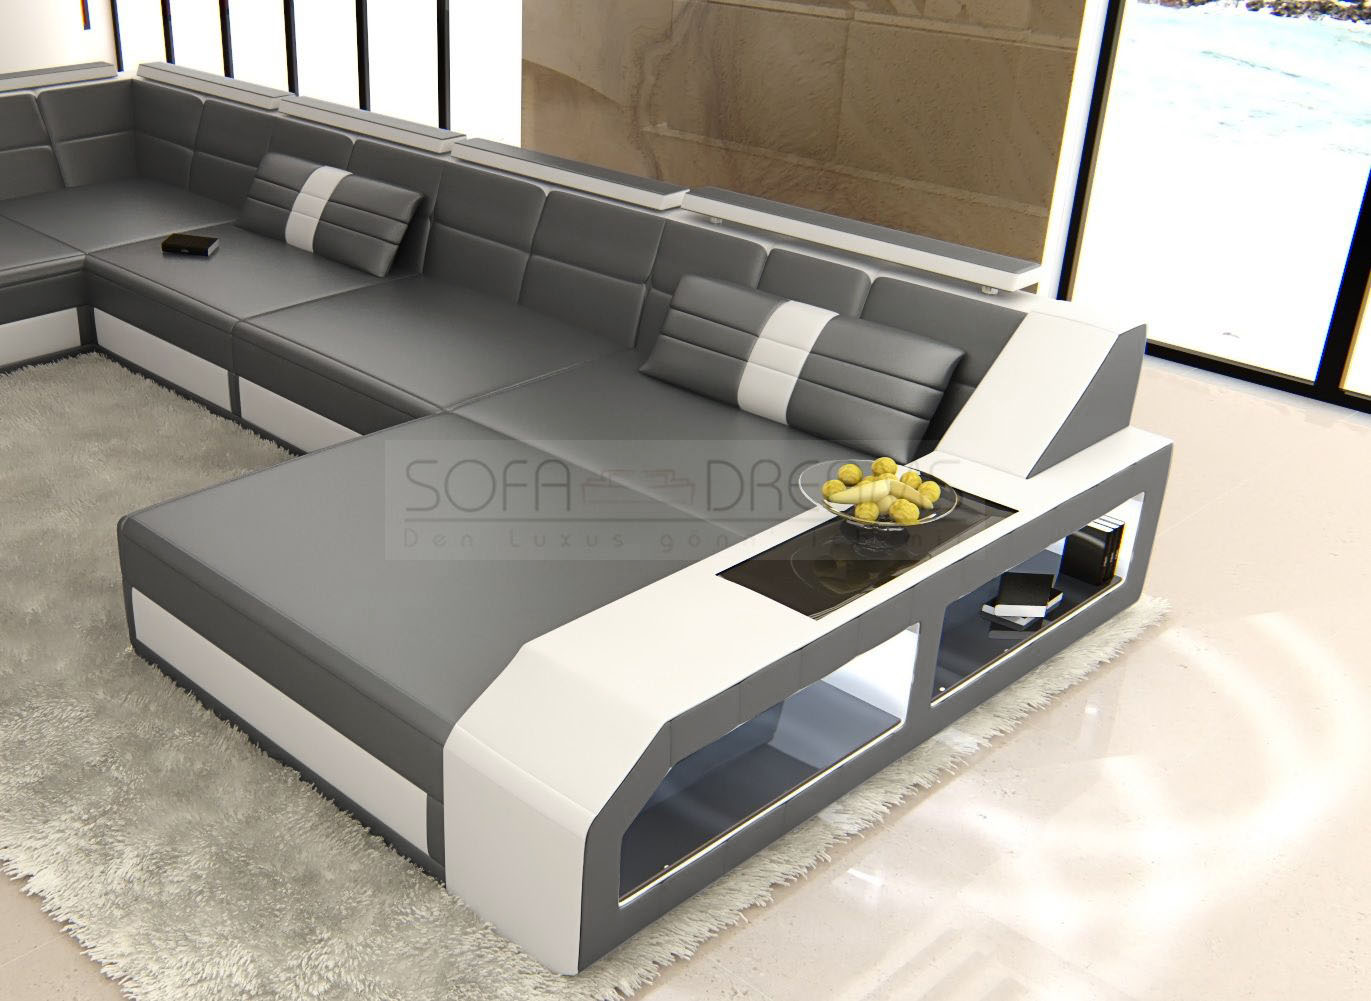 leather sofa italian design matera xxl in u shaped with led lighting luxury. Black Bedroom Furniture Sets. Home Design Ideas